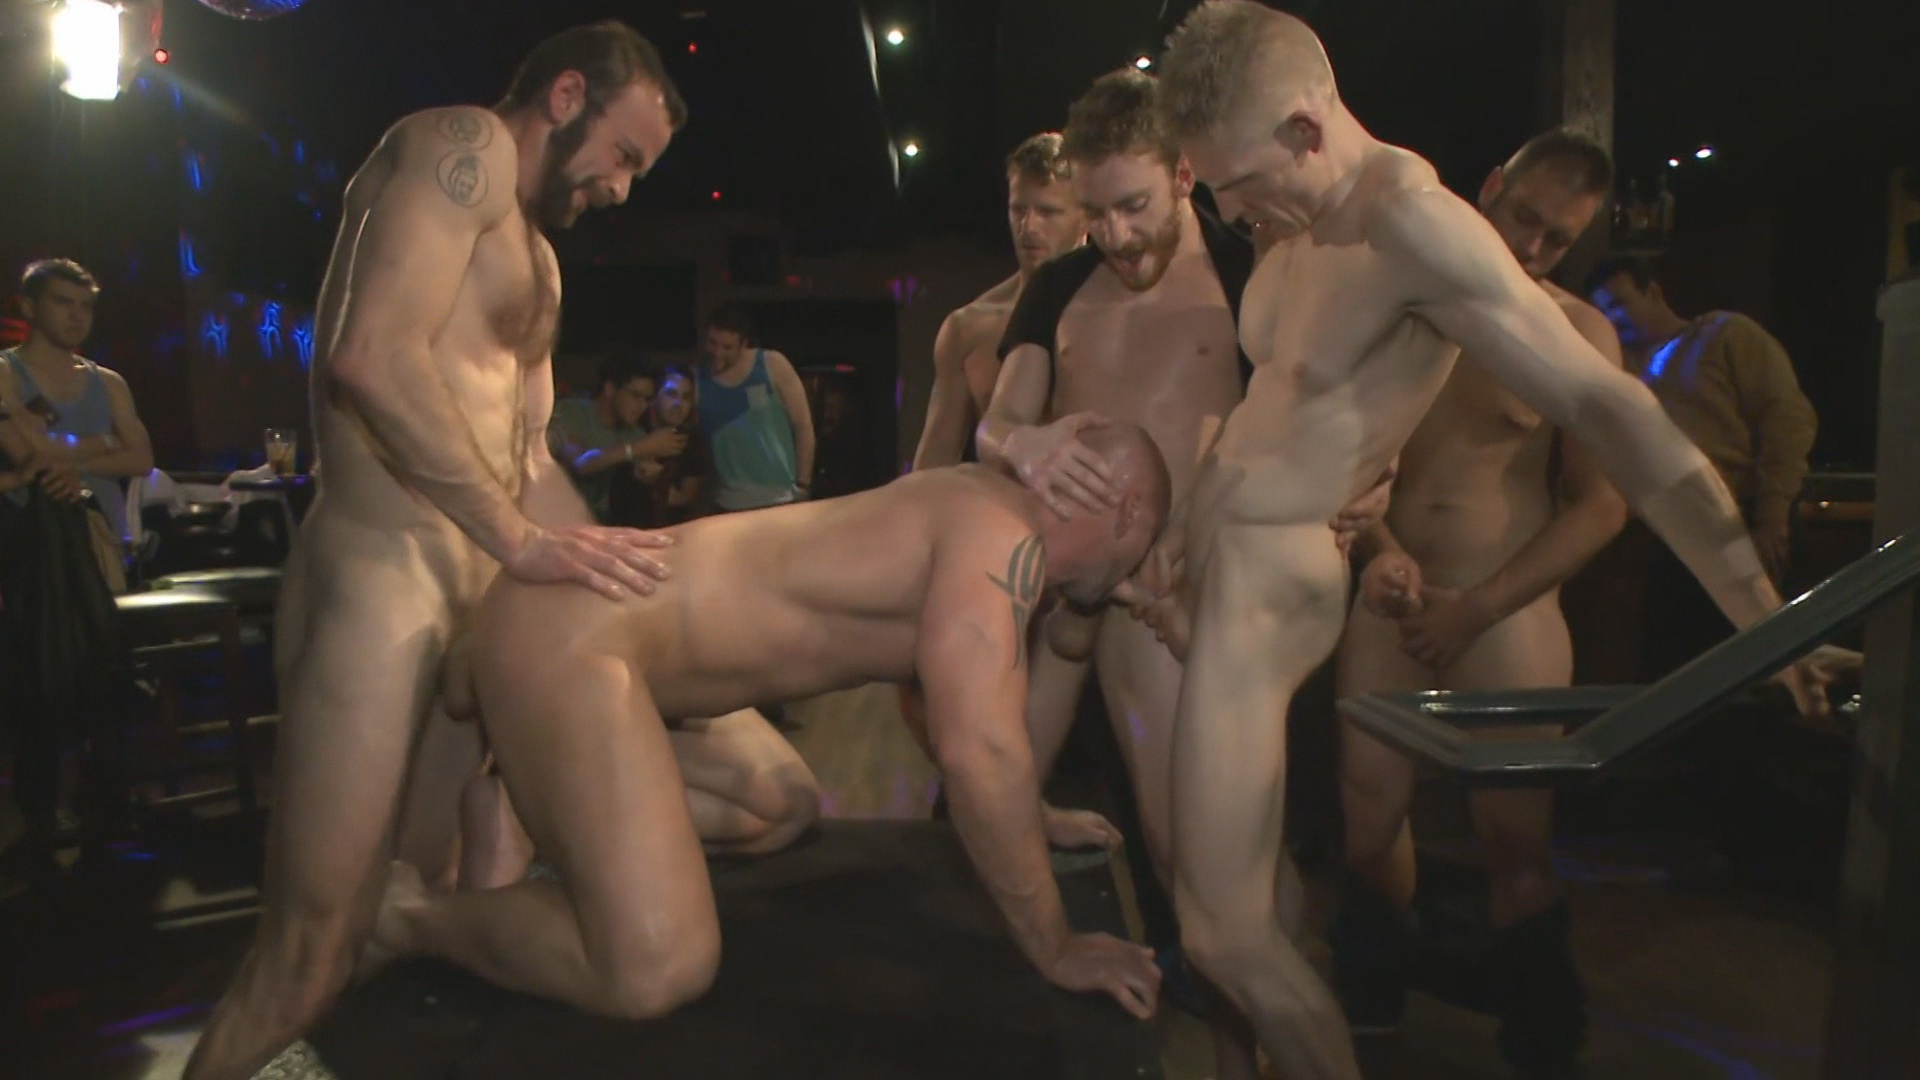 Bound In Public: Muscled Stud Has Had Enough But The Horny Crowd Says No Xvideo gay